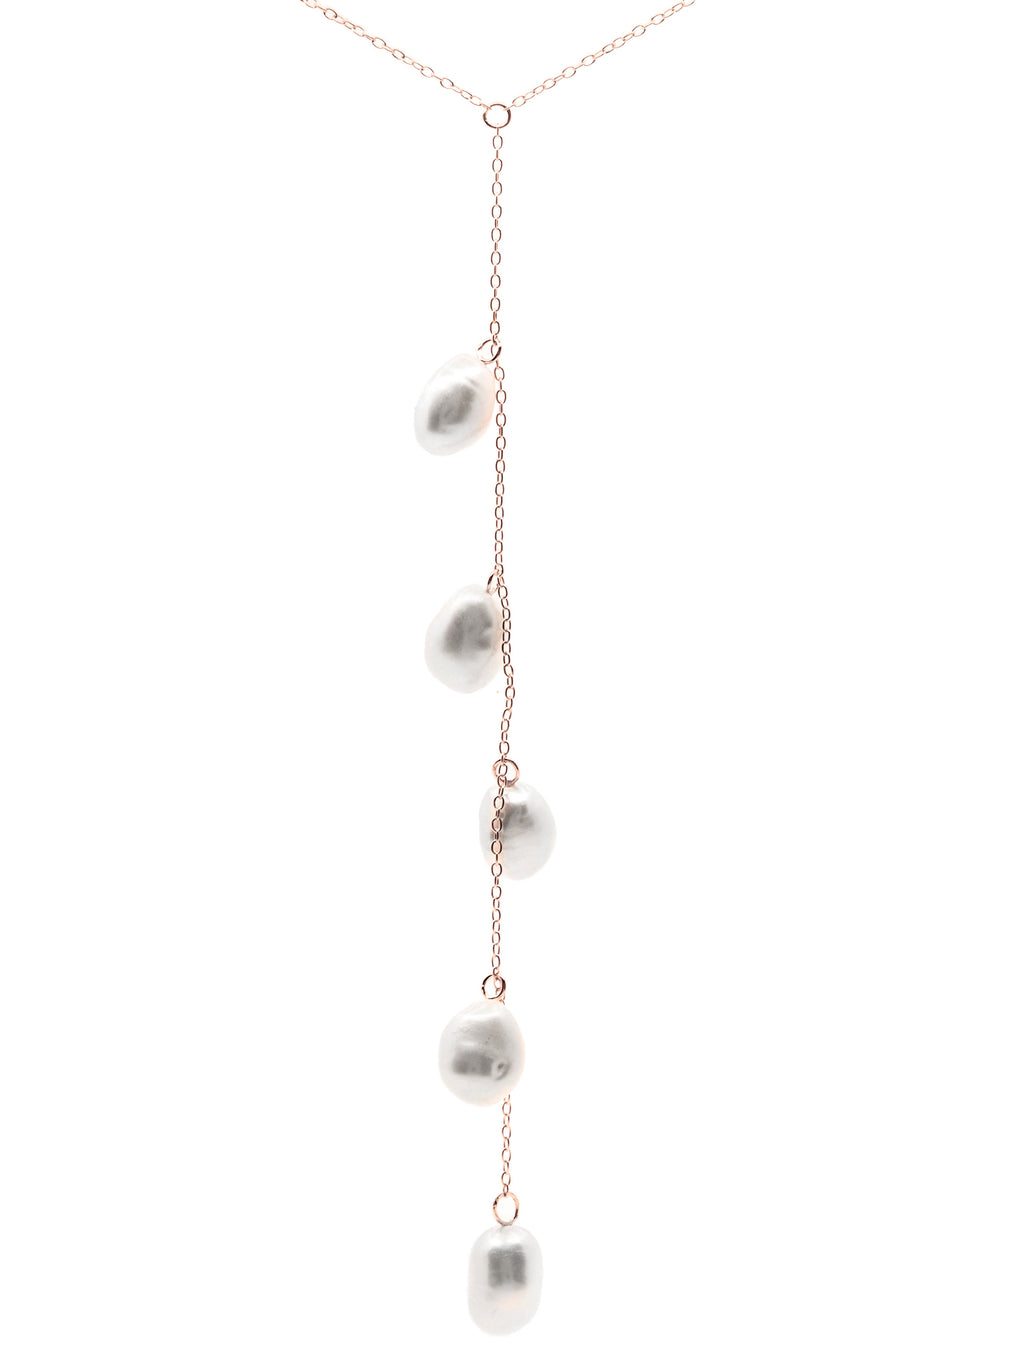 Cape Leveque baroque pearl drop necklace, sterling silver, rose gold plated